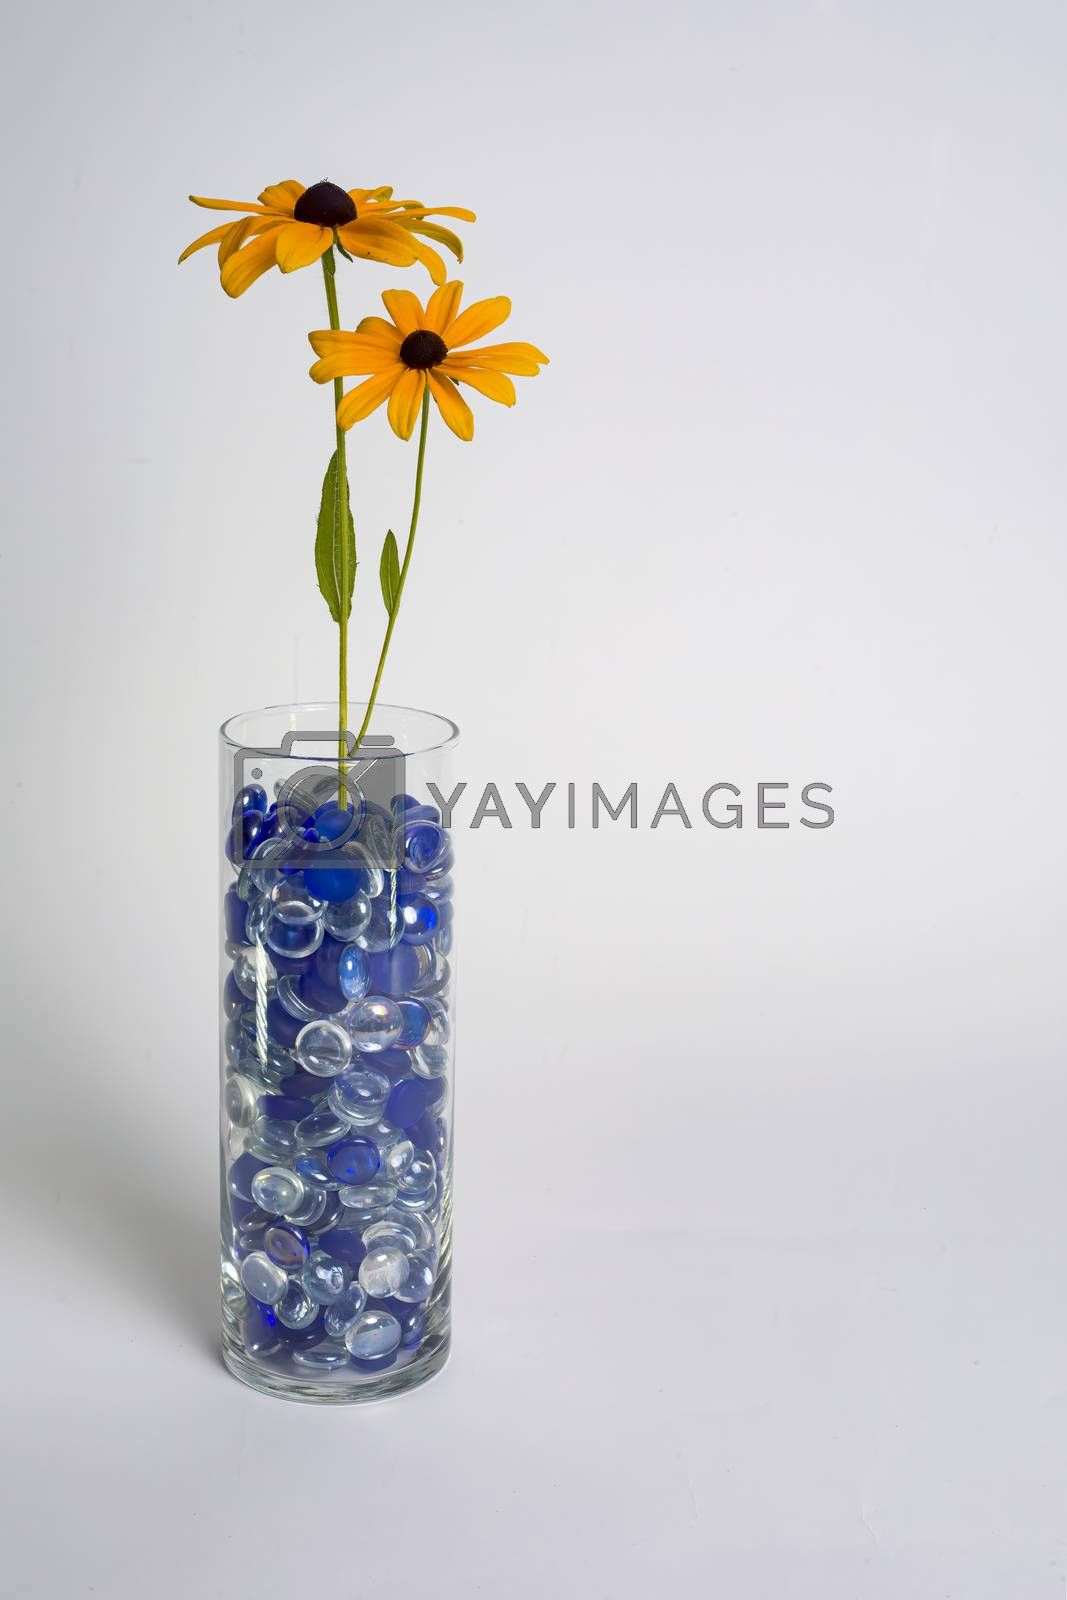 Two Black-eyed Susans in a glass vase filled with blue beads against a white backdrop.